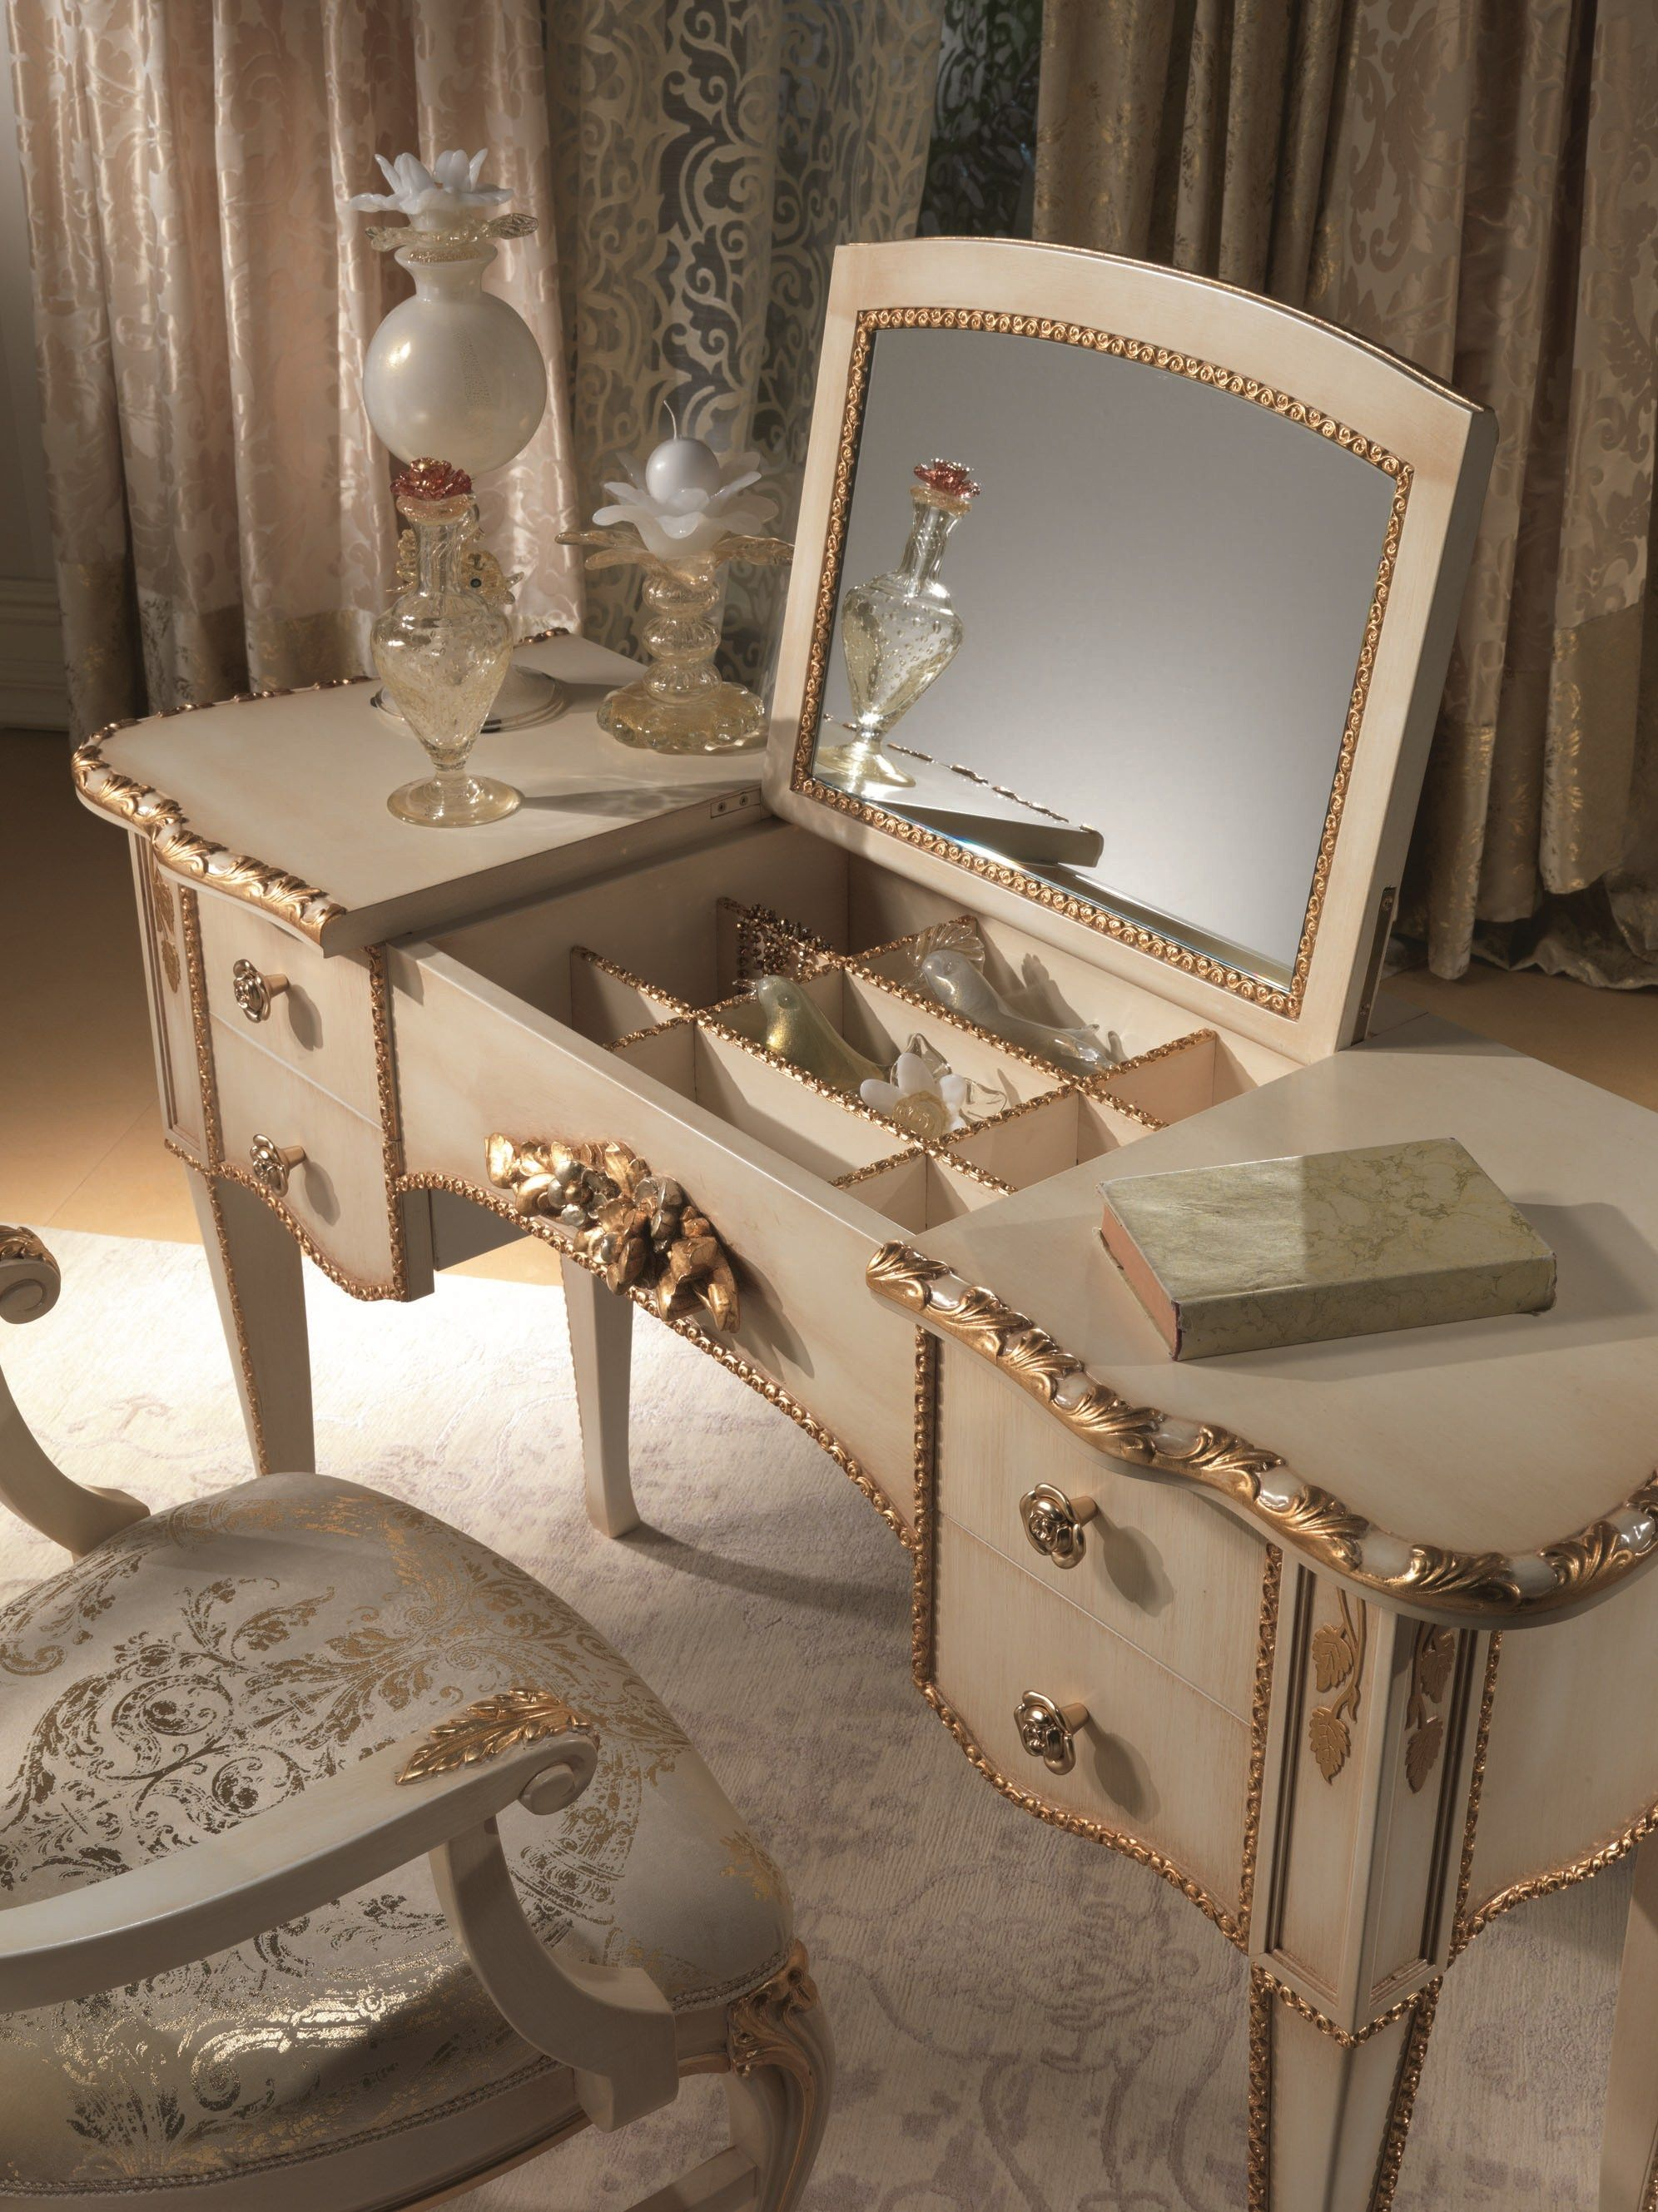 Best Images About Vanity On Pinterest Mirrored Vanity Table - Vanity table